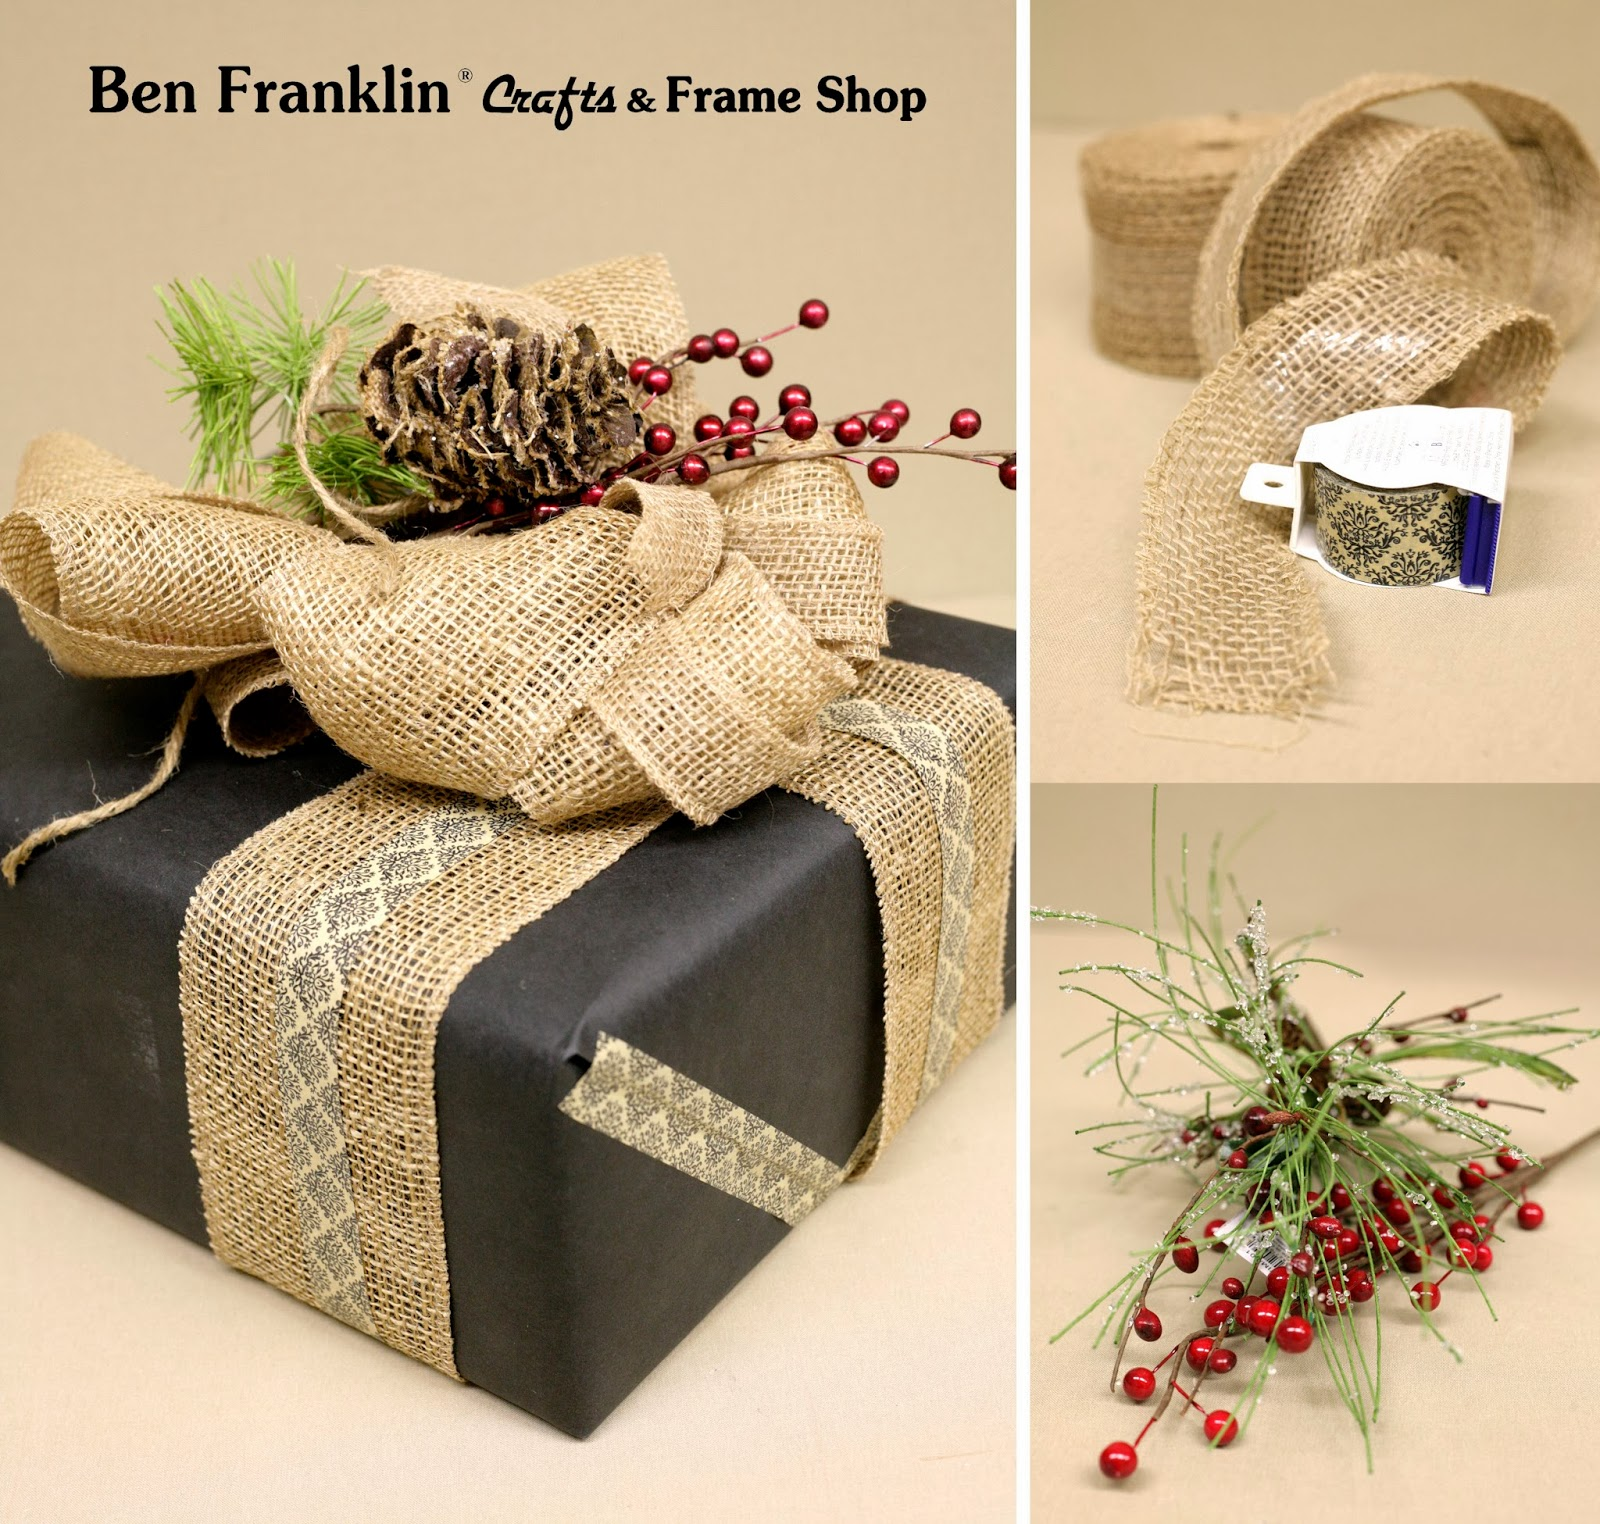 Ben Franklin Crafts And Frame Shop Last Minute Gift